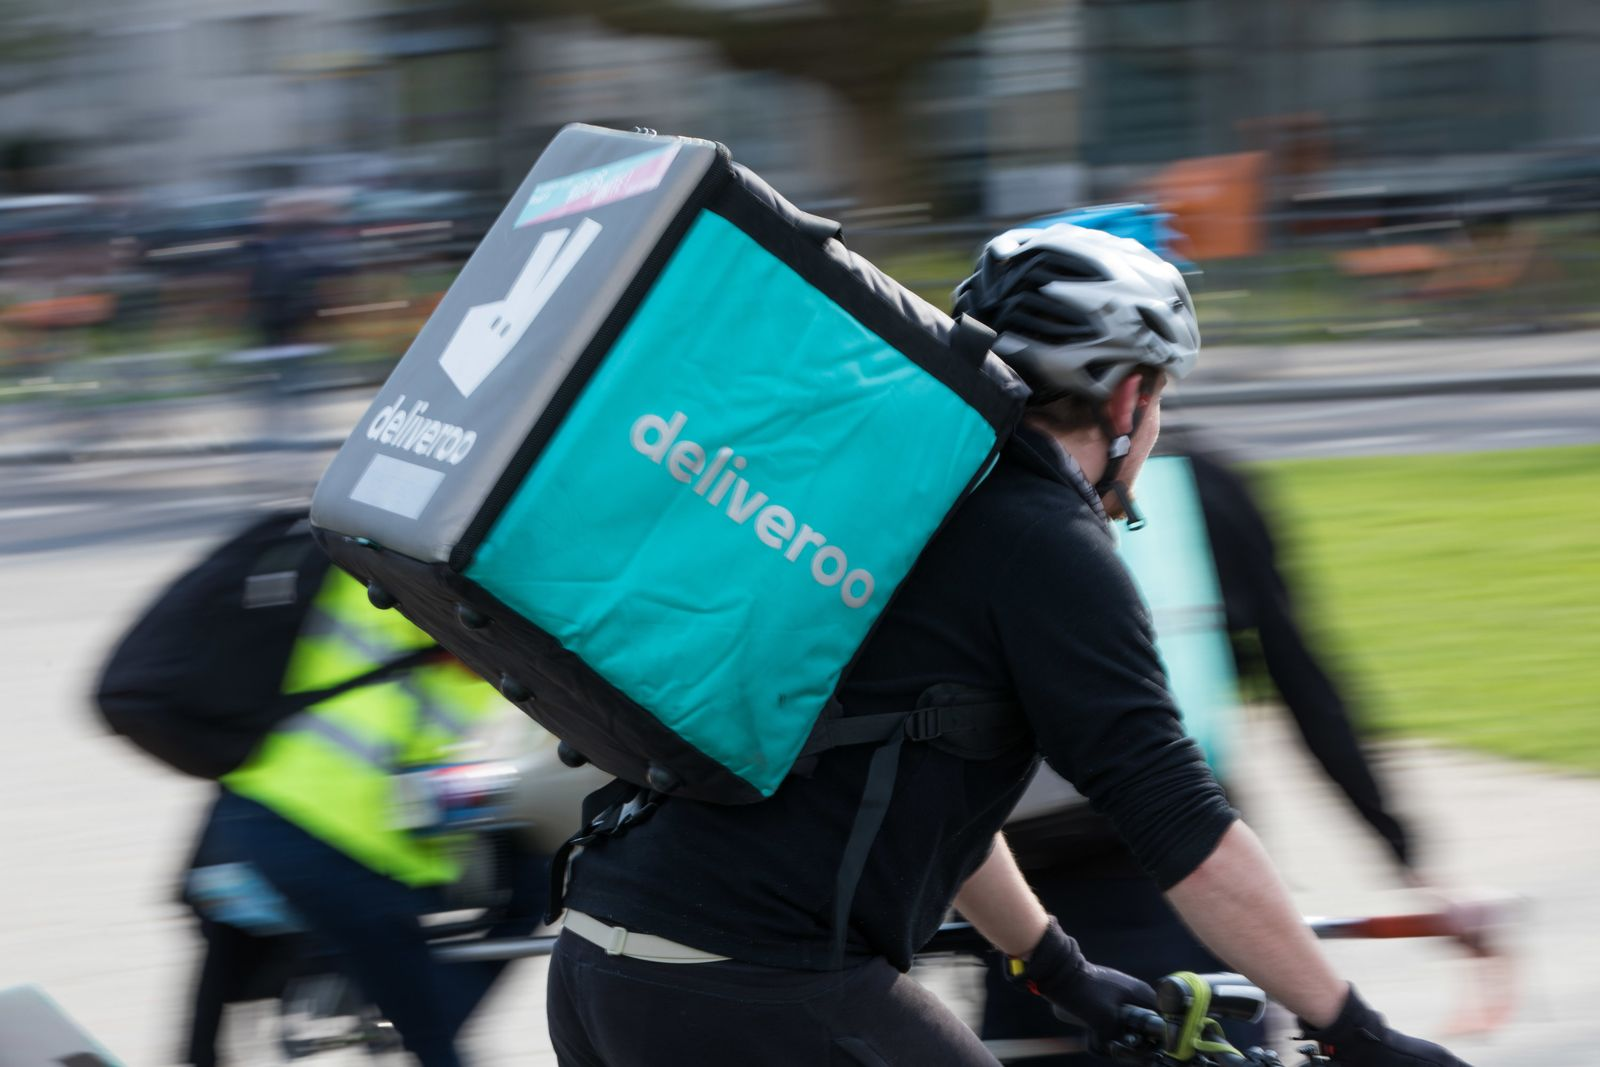 Essenslieferdienst «Deliveroo»